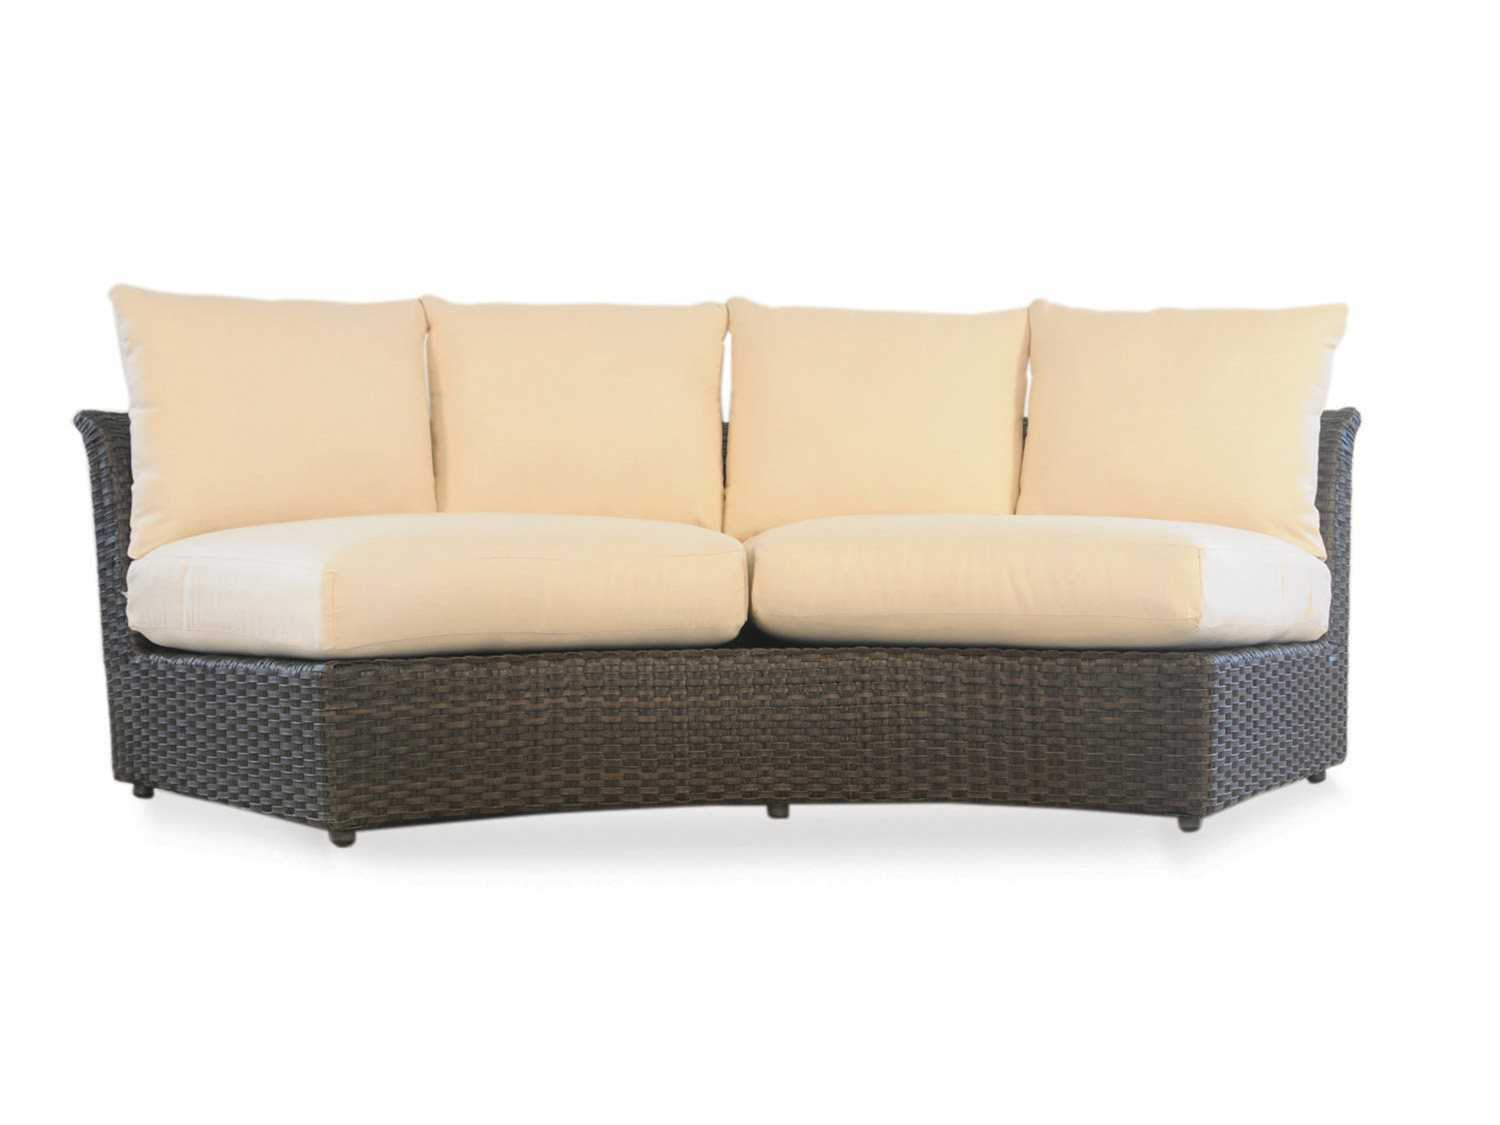 Lloyd Flanders Flair Replacement Cushion For Curved Sofa